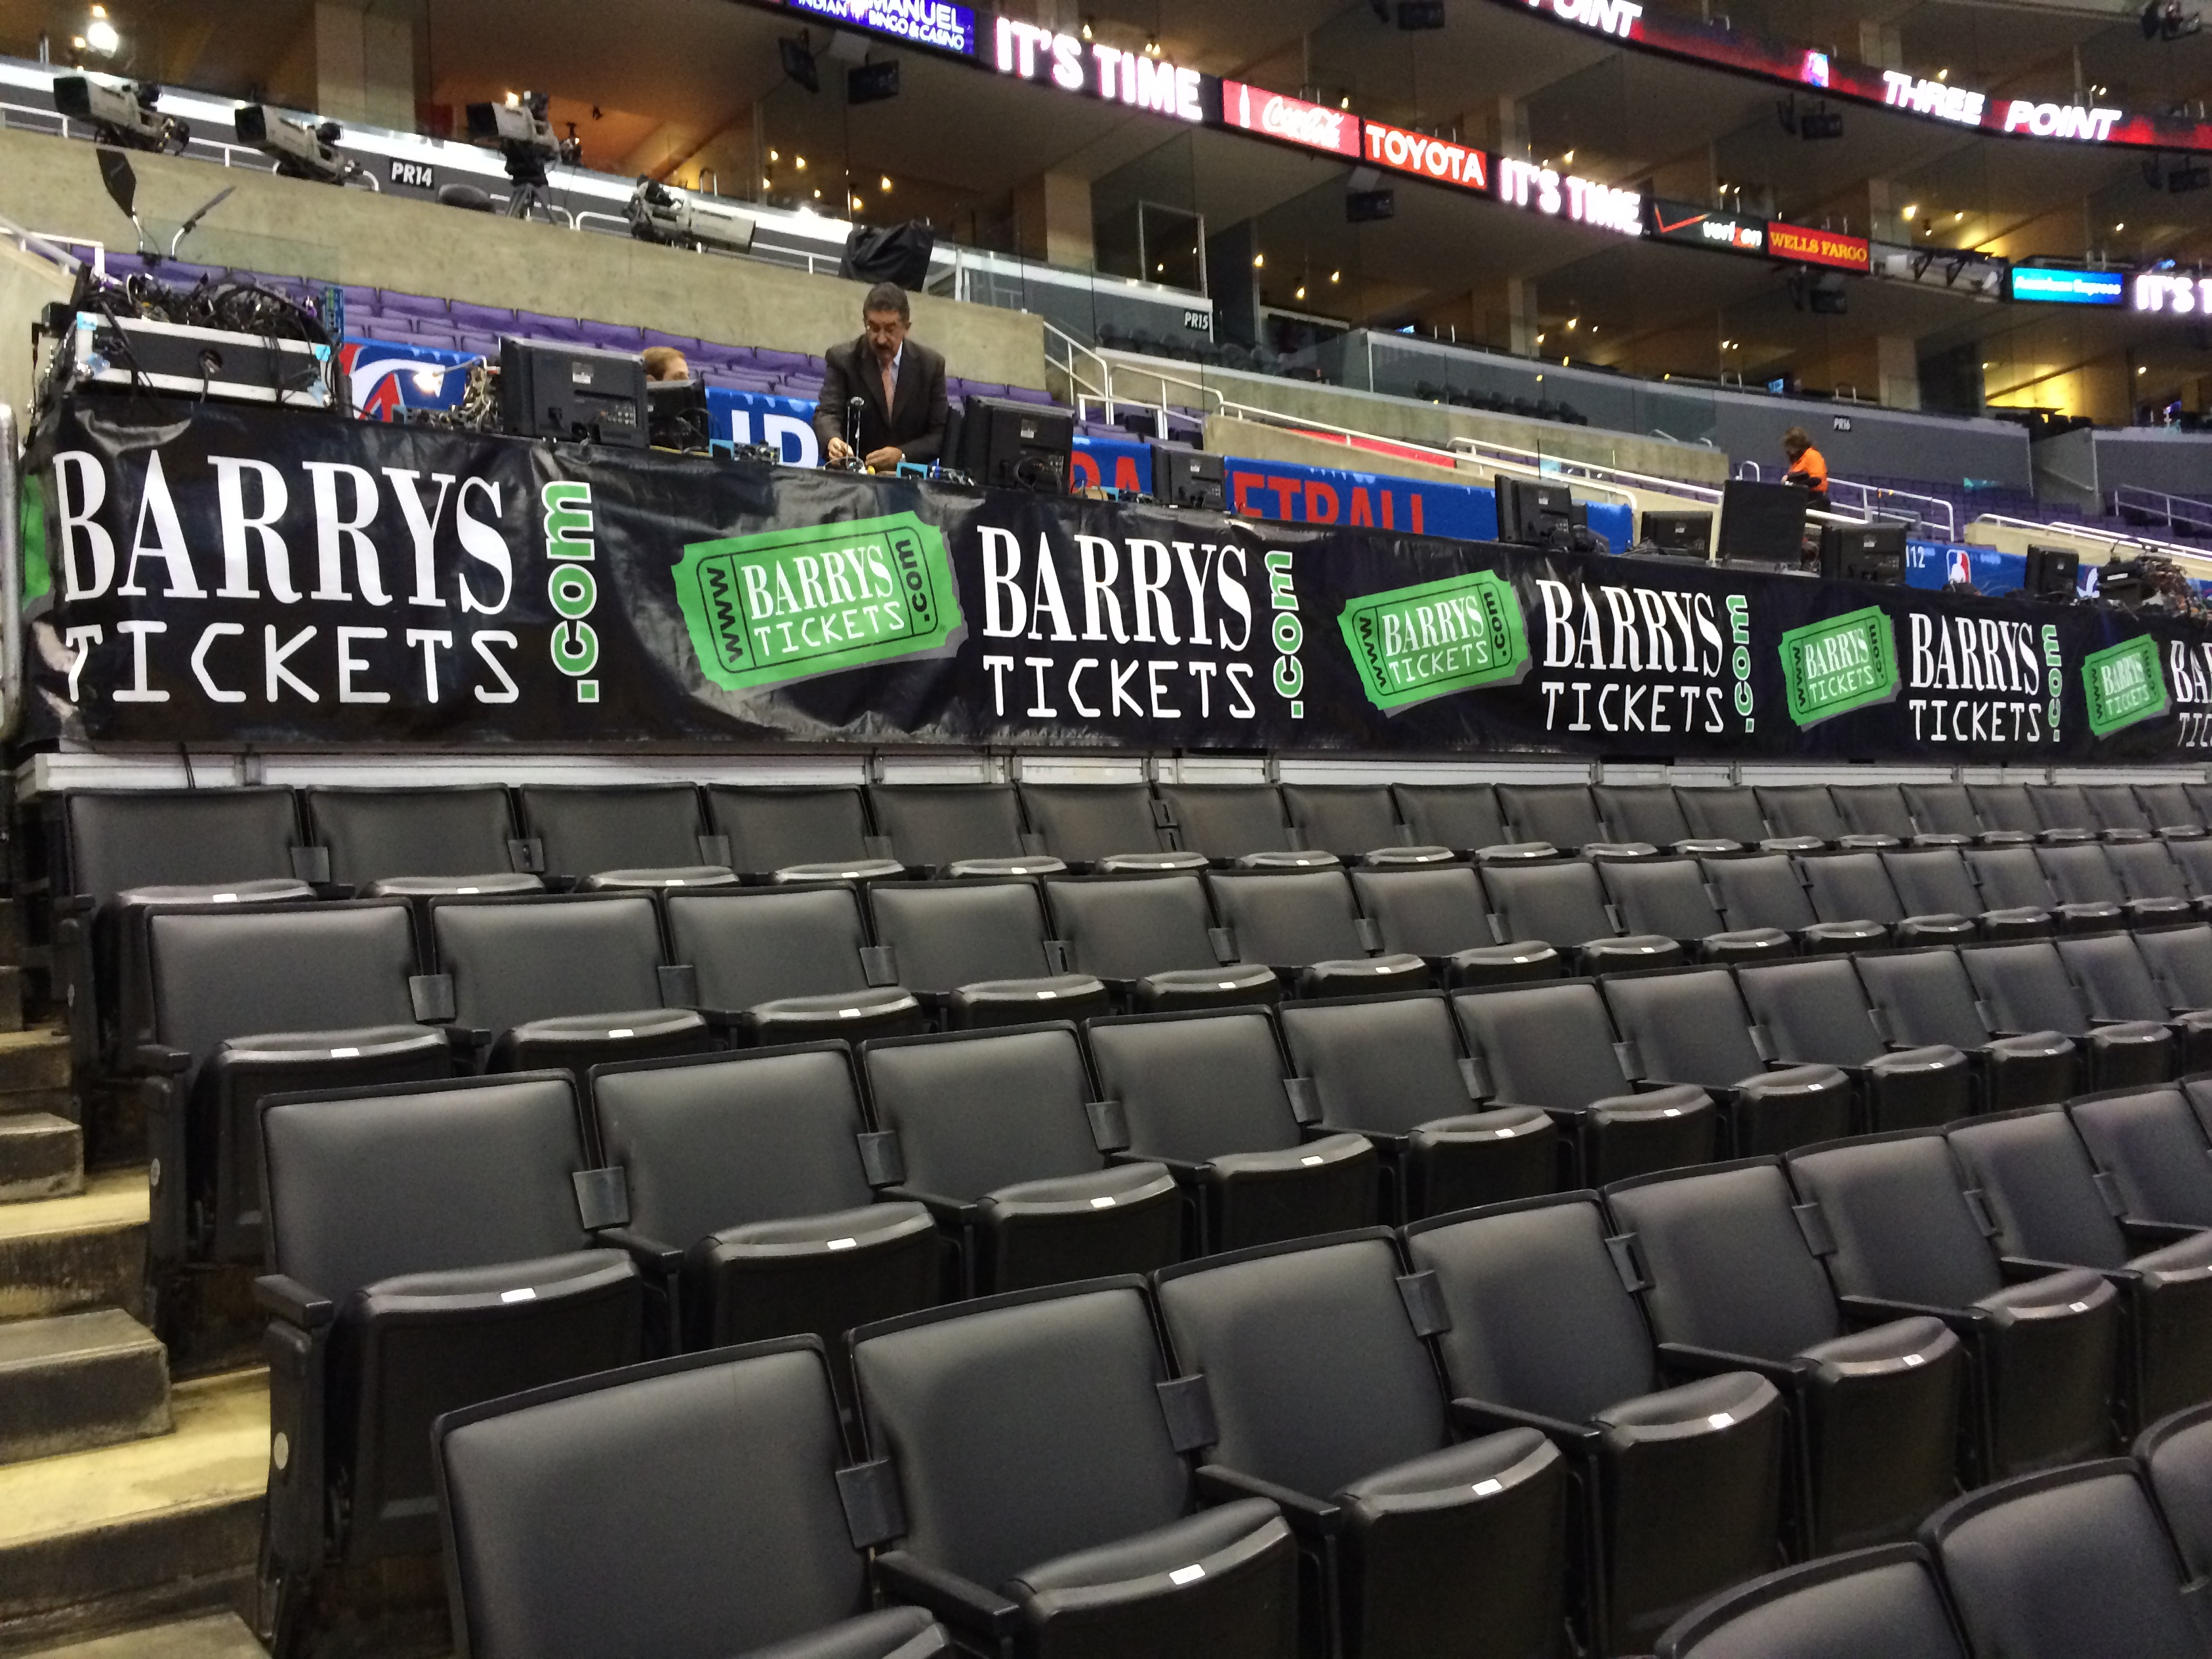 Barry's Tickets Logo Clippers Game Staples Center